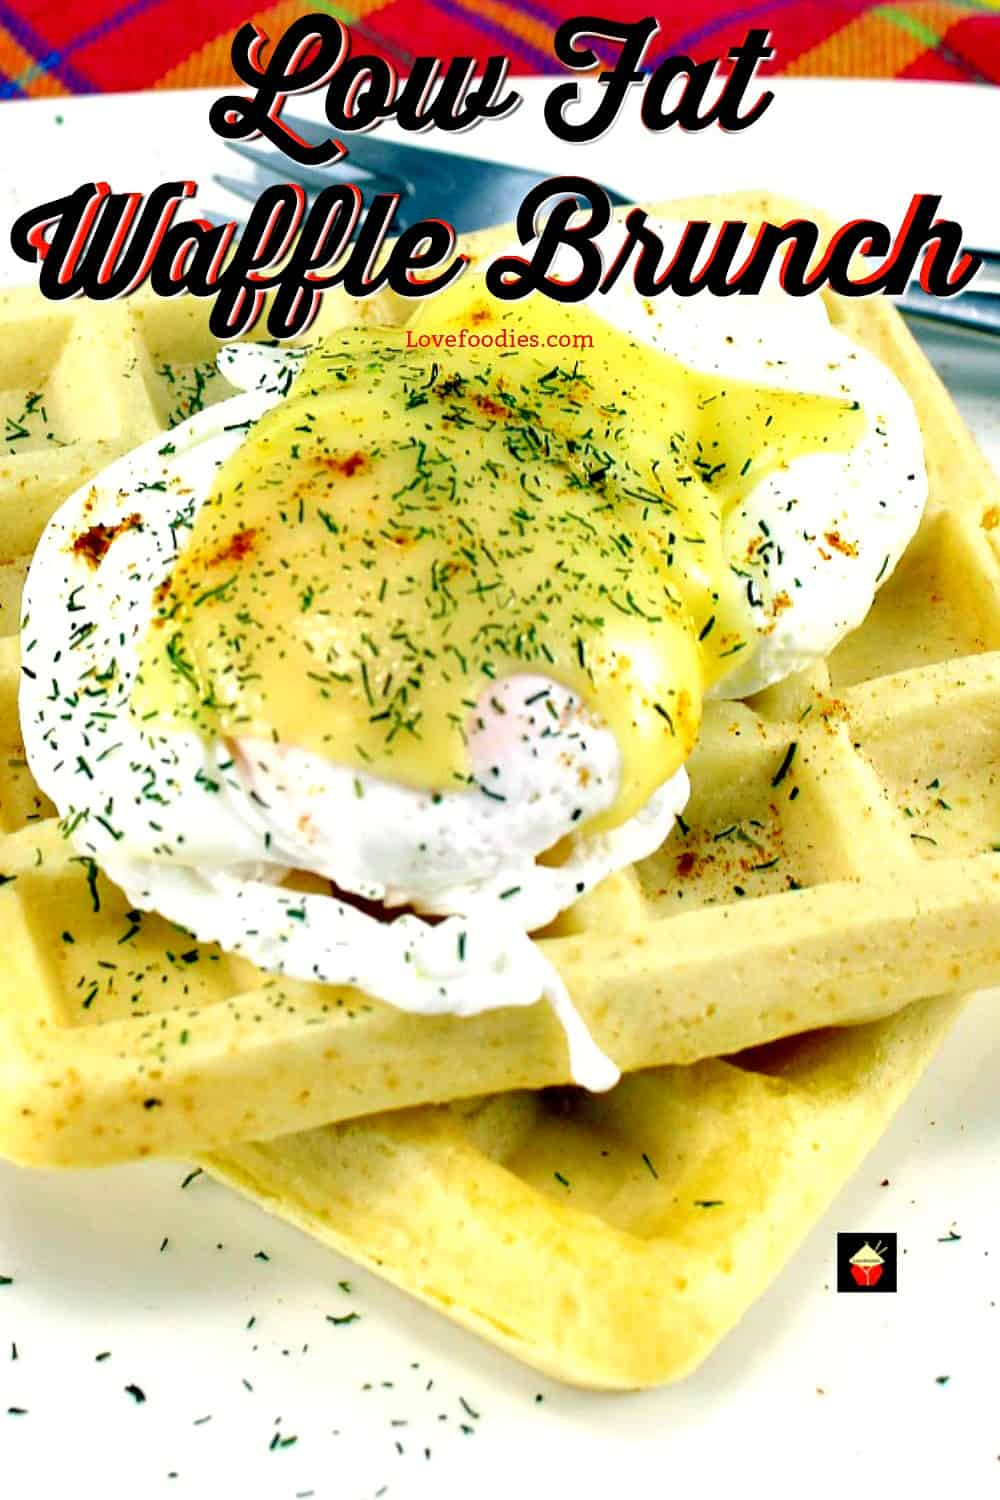 Poached Eggs And Waffles Brunch Easy Recipe For Low Fat Waffles